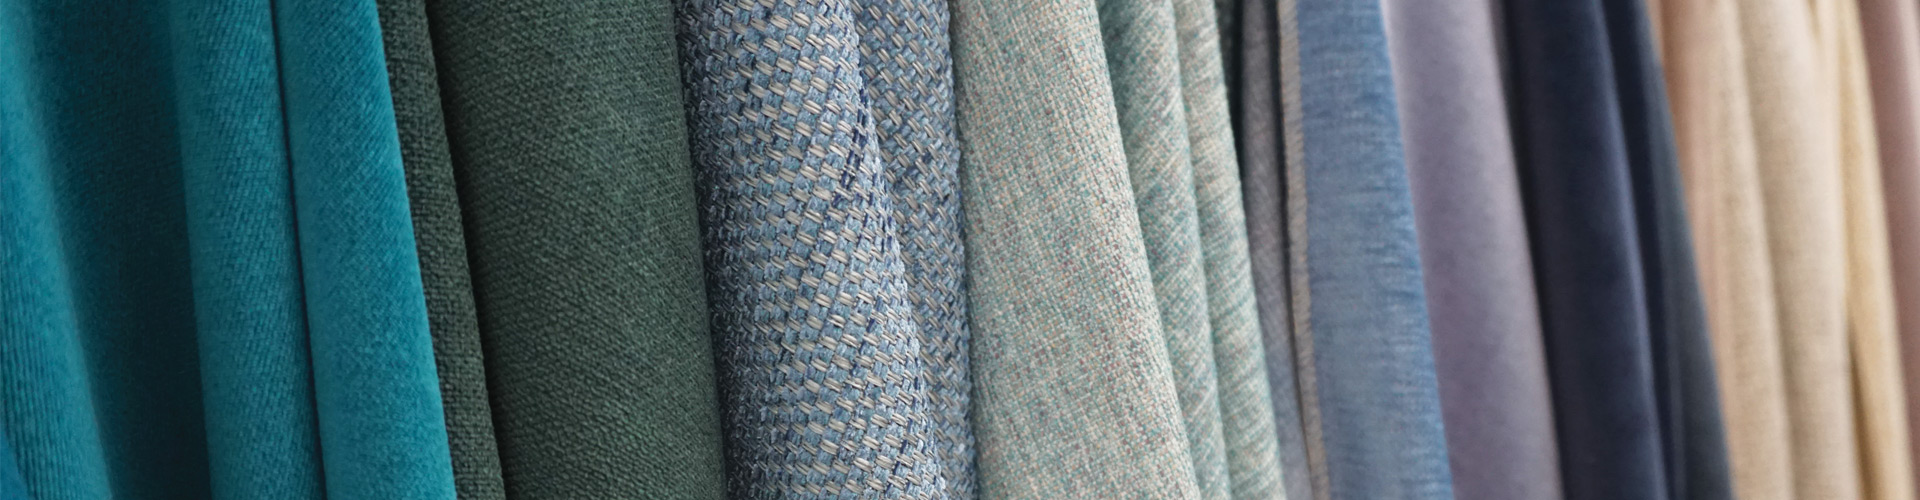 The Lounge Co. Upholstery Fabric Swatches